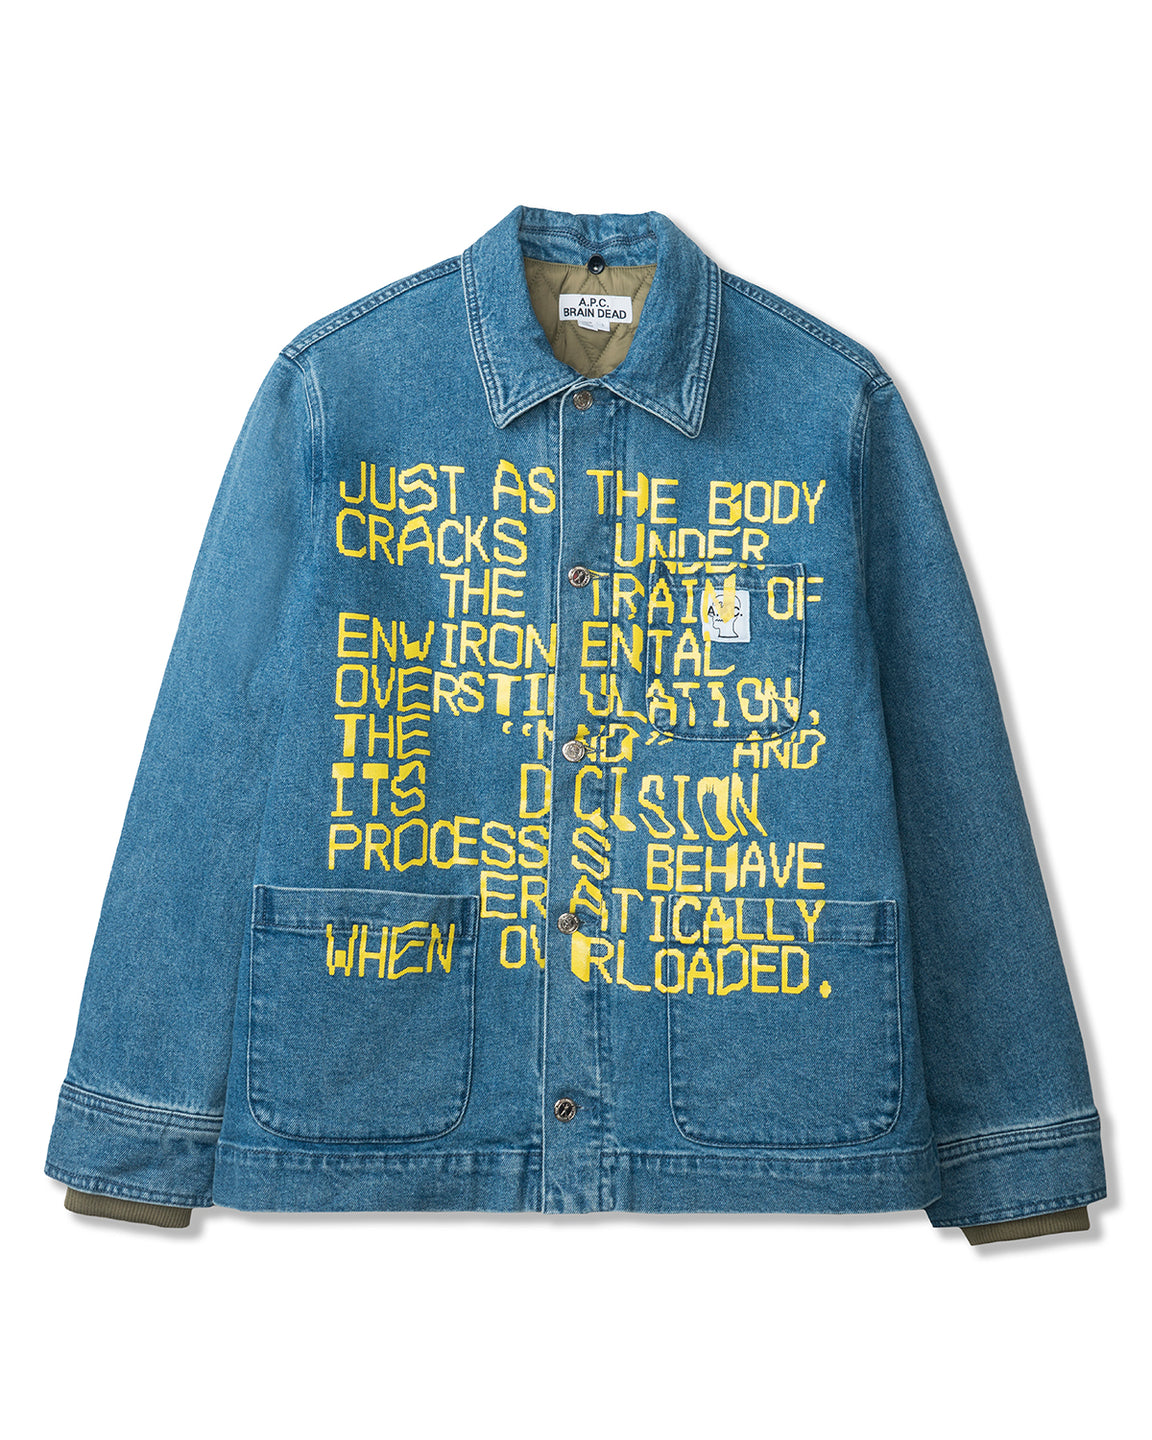 Women's Imhotep Japanese Denim Chore Jacket A.P.C. x Brain Dead